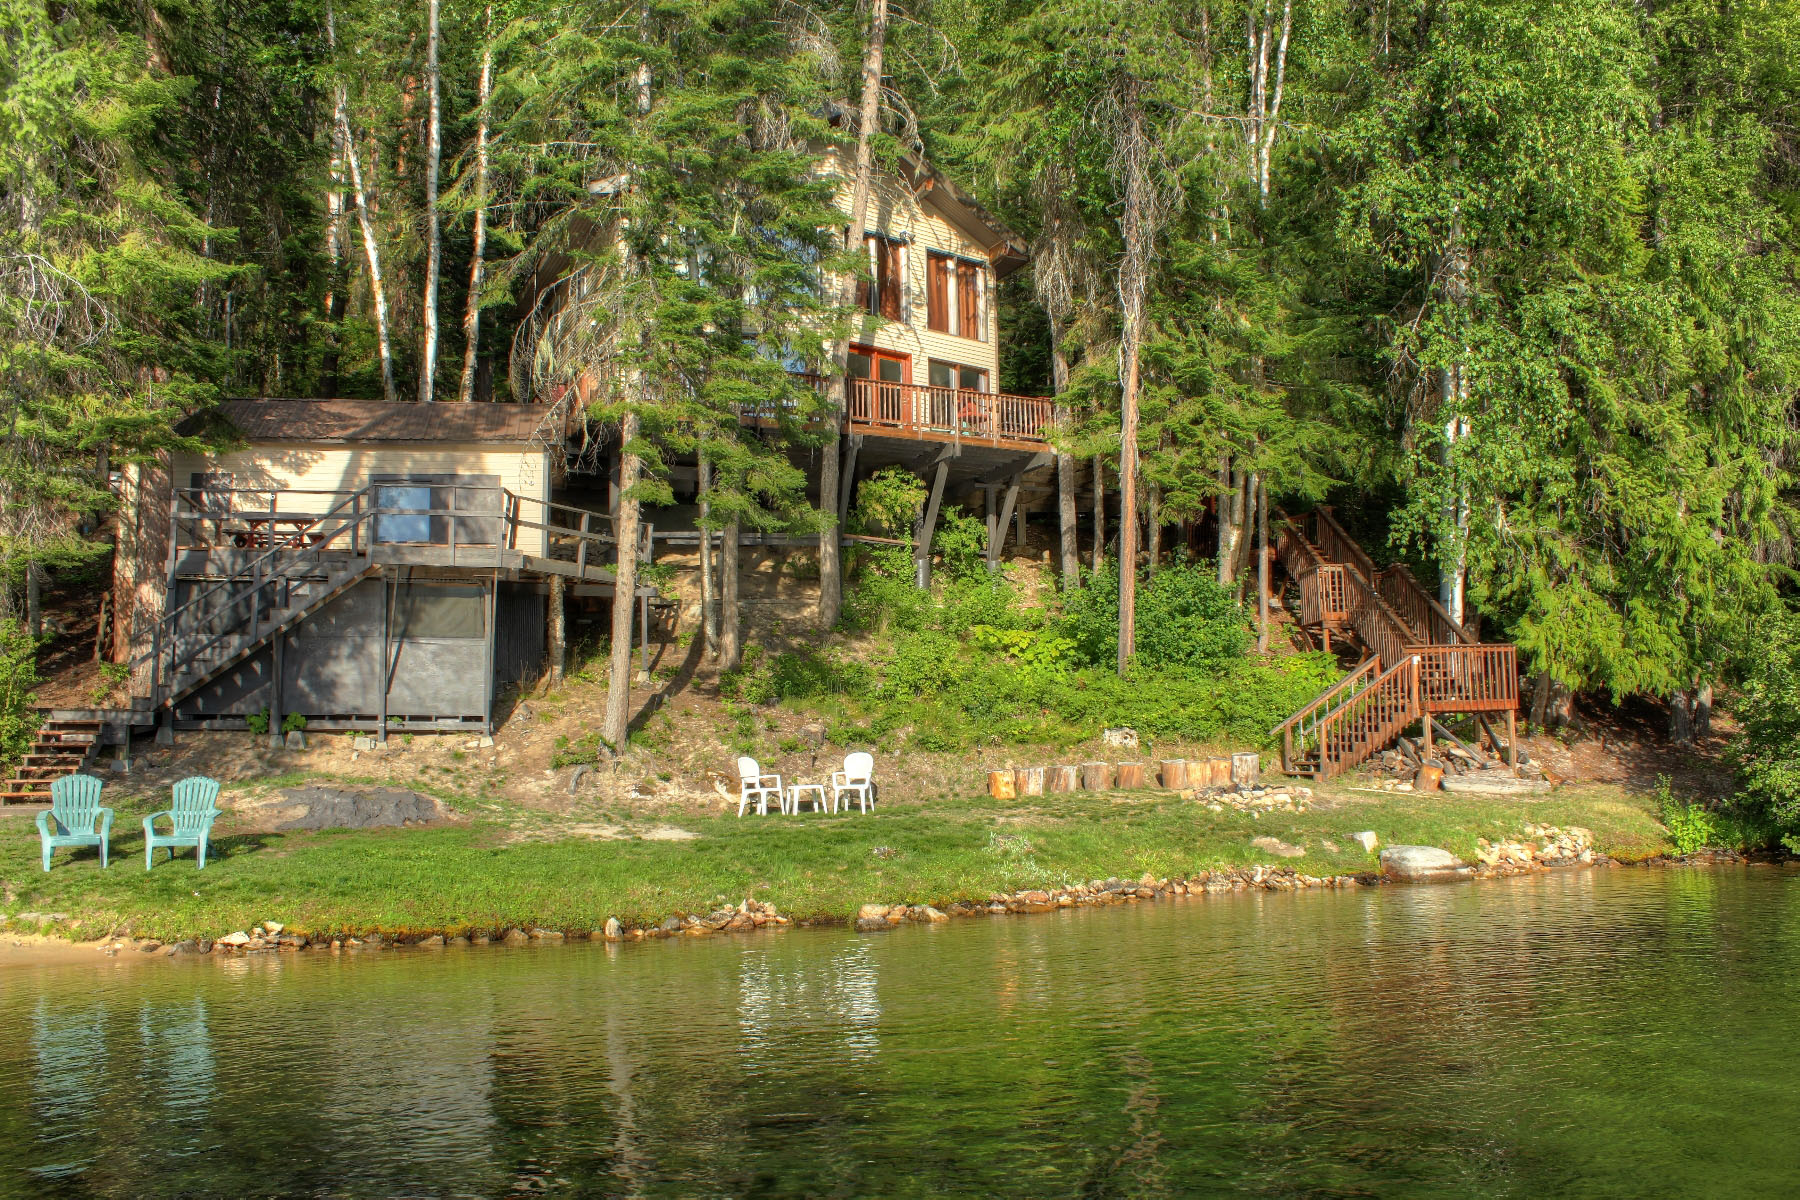 Villa per Vendita alle ore Waterfront home located in beautiful Cavanaugh Bay 308 E Cavanaugh Bay Rd Coolin, Idaho, 83821 Stati Uniti